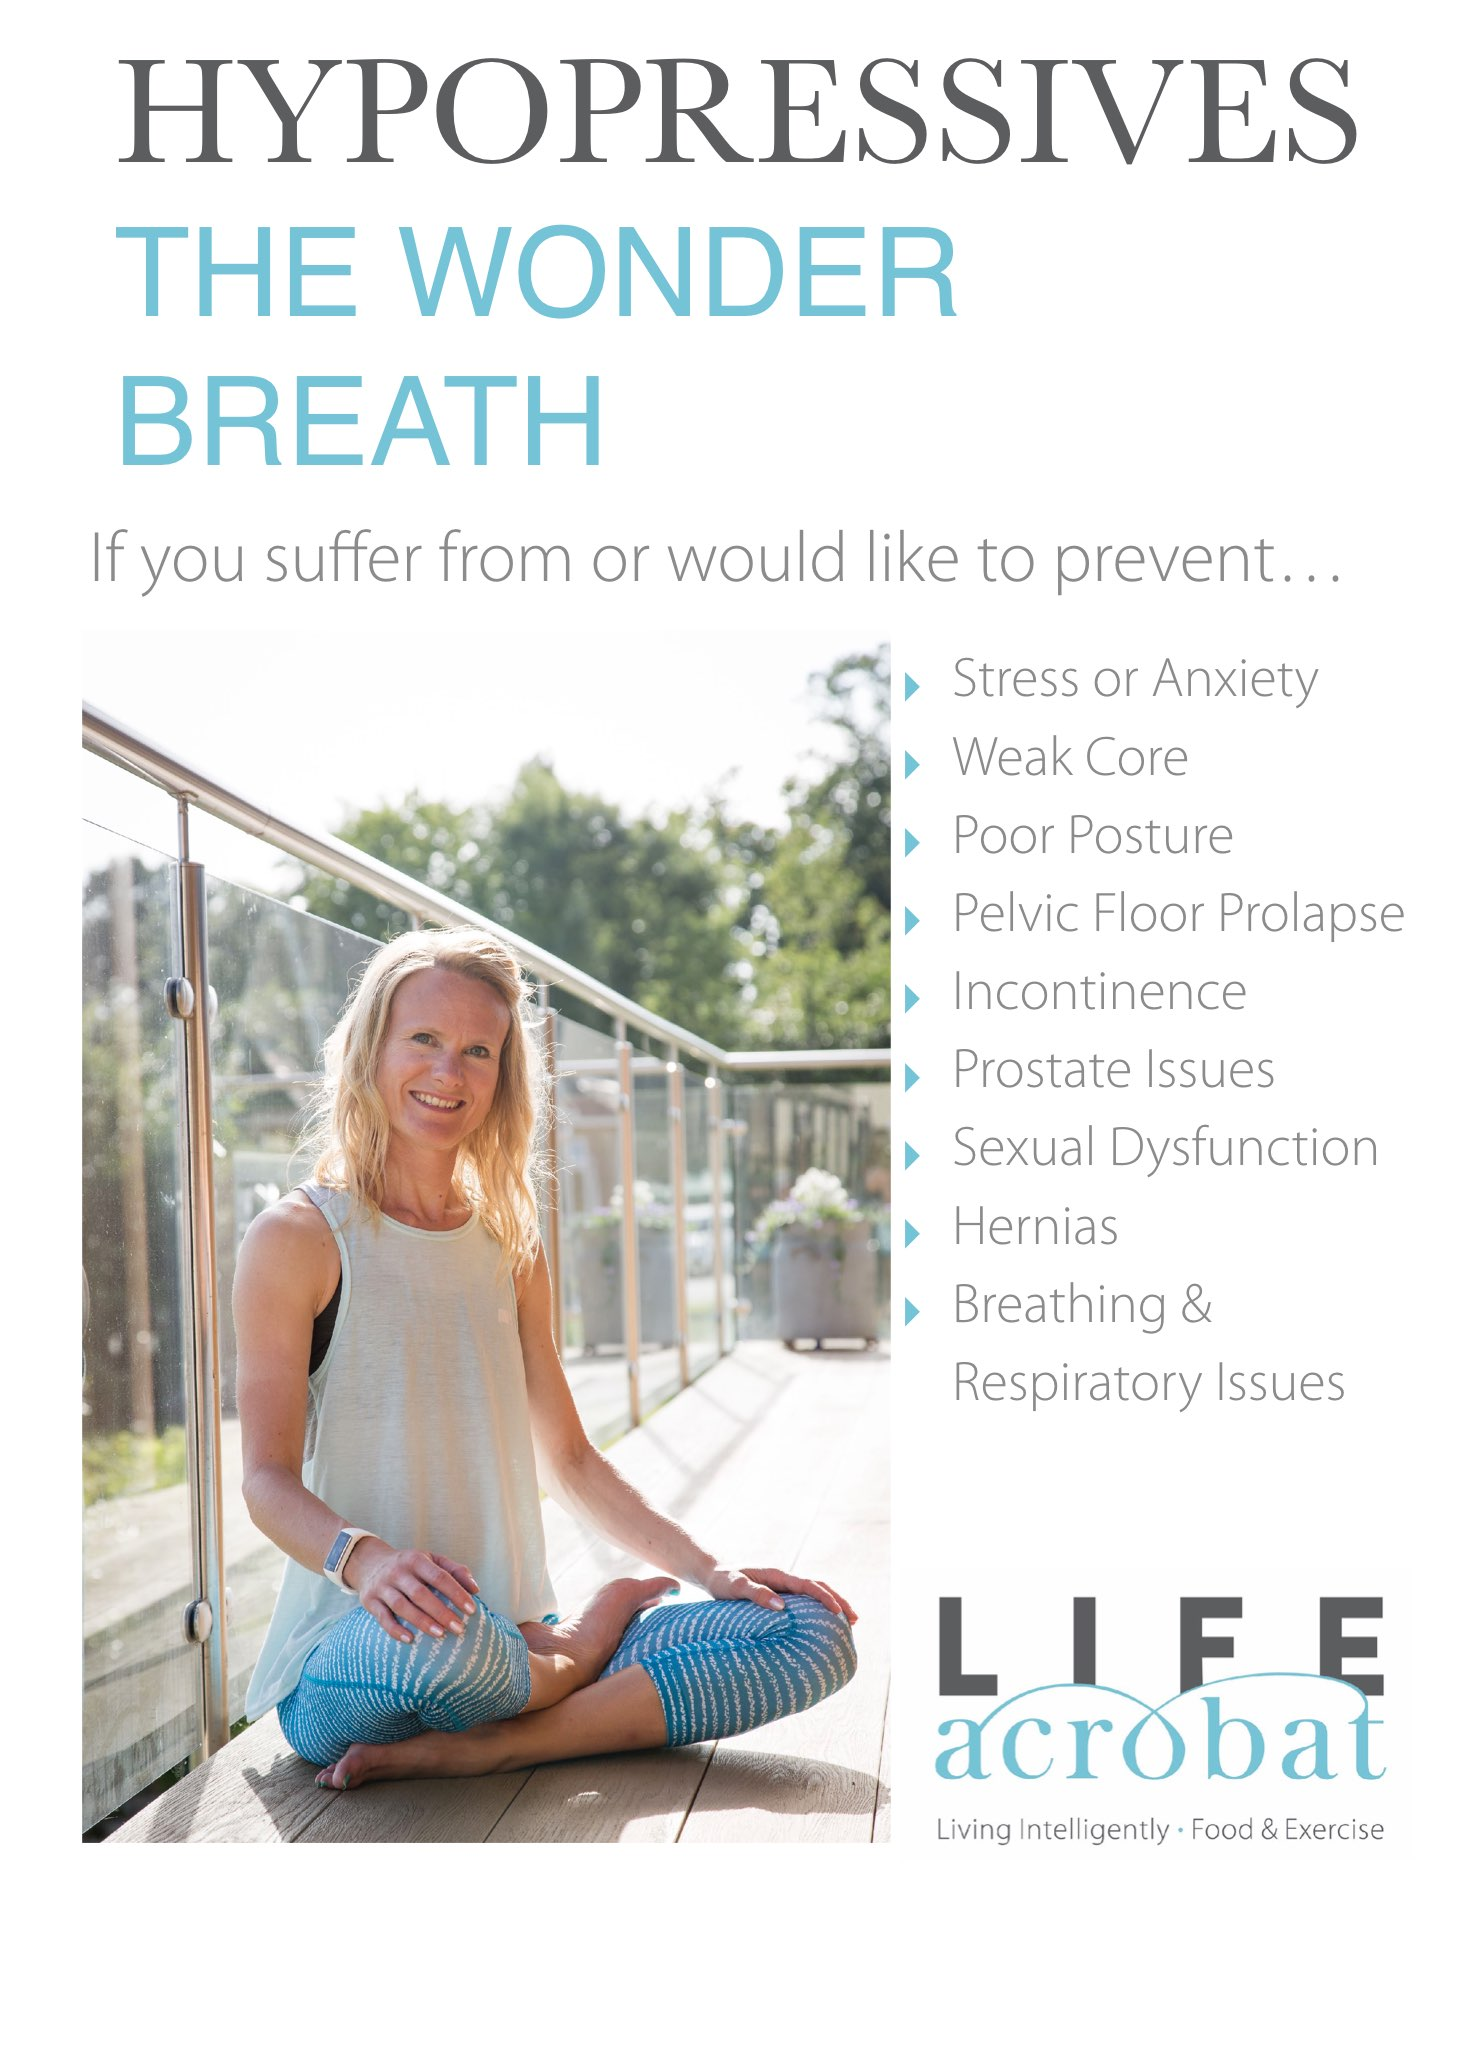 A breathing technique designed to support your mental health, strengthen your core, and improve your posture.